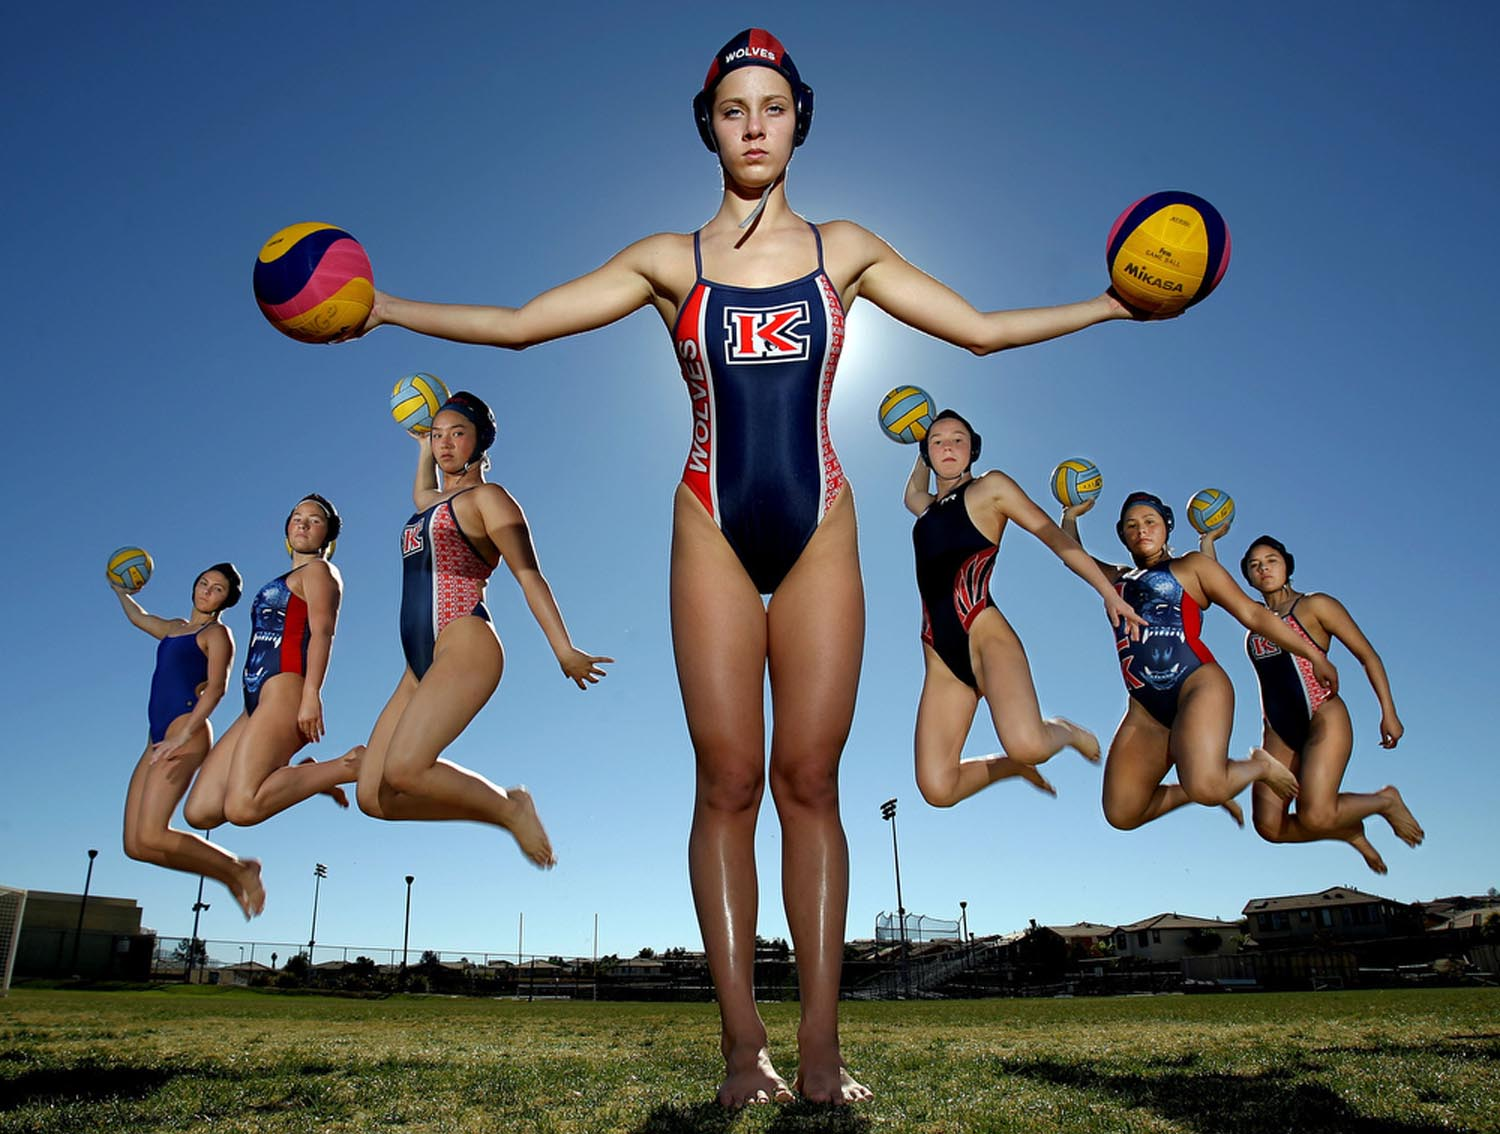 Riverside King water polo starters from left Mary Myers, Caitlyn Eno, Samantha Shaw, Hannah McCarley, Madison Stamen, Chase Kelly and Anay Ramirez are ready to fight their way to a CIF title Wednesday in Riverside, CA. November 26, 2014.